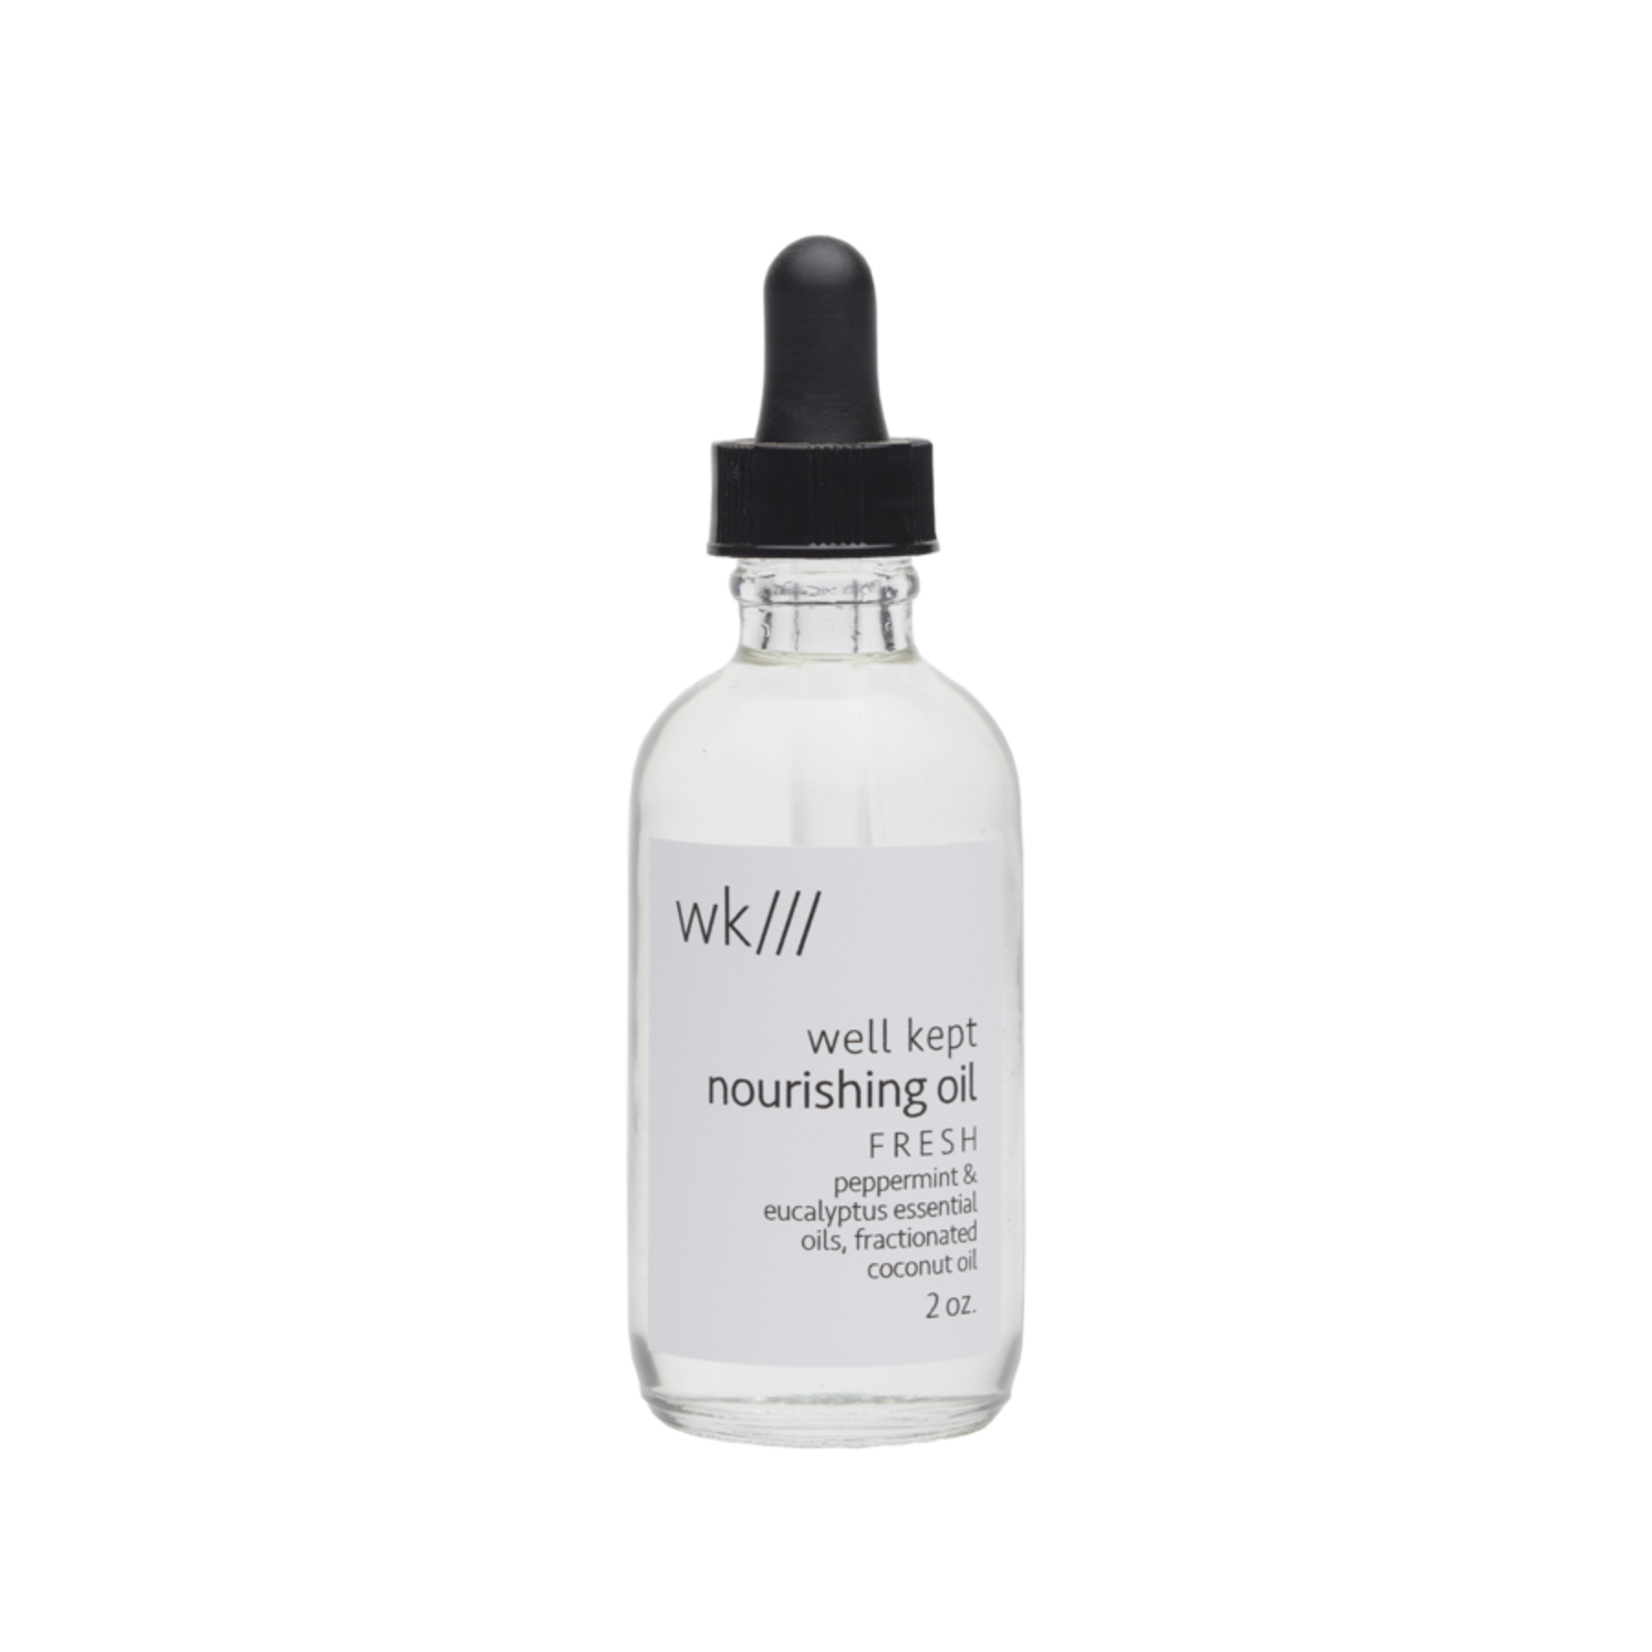 WELL KEPT NOURISHING BODY OIL - FRESH